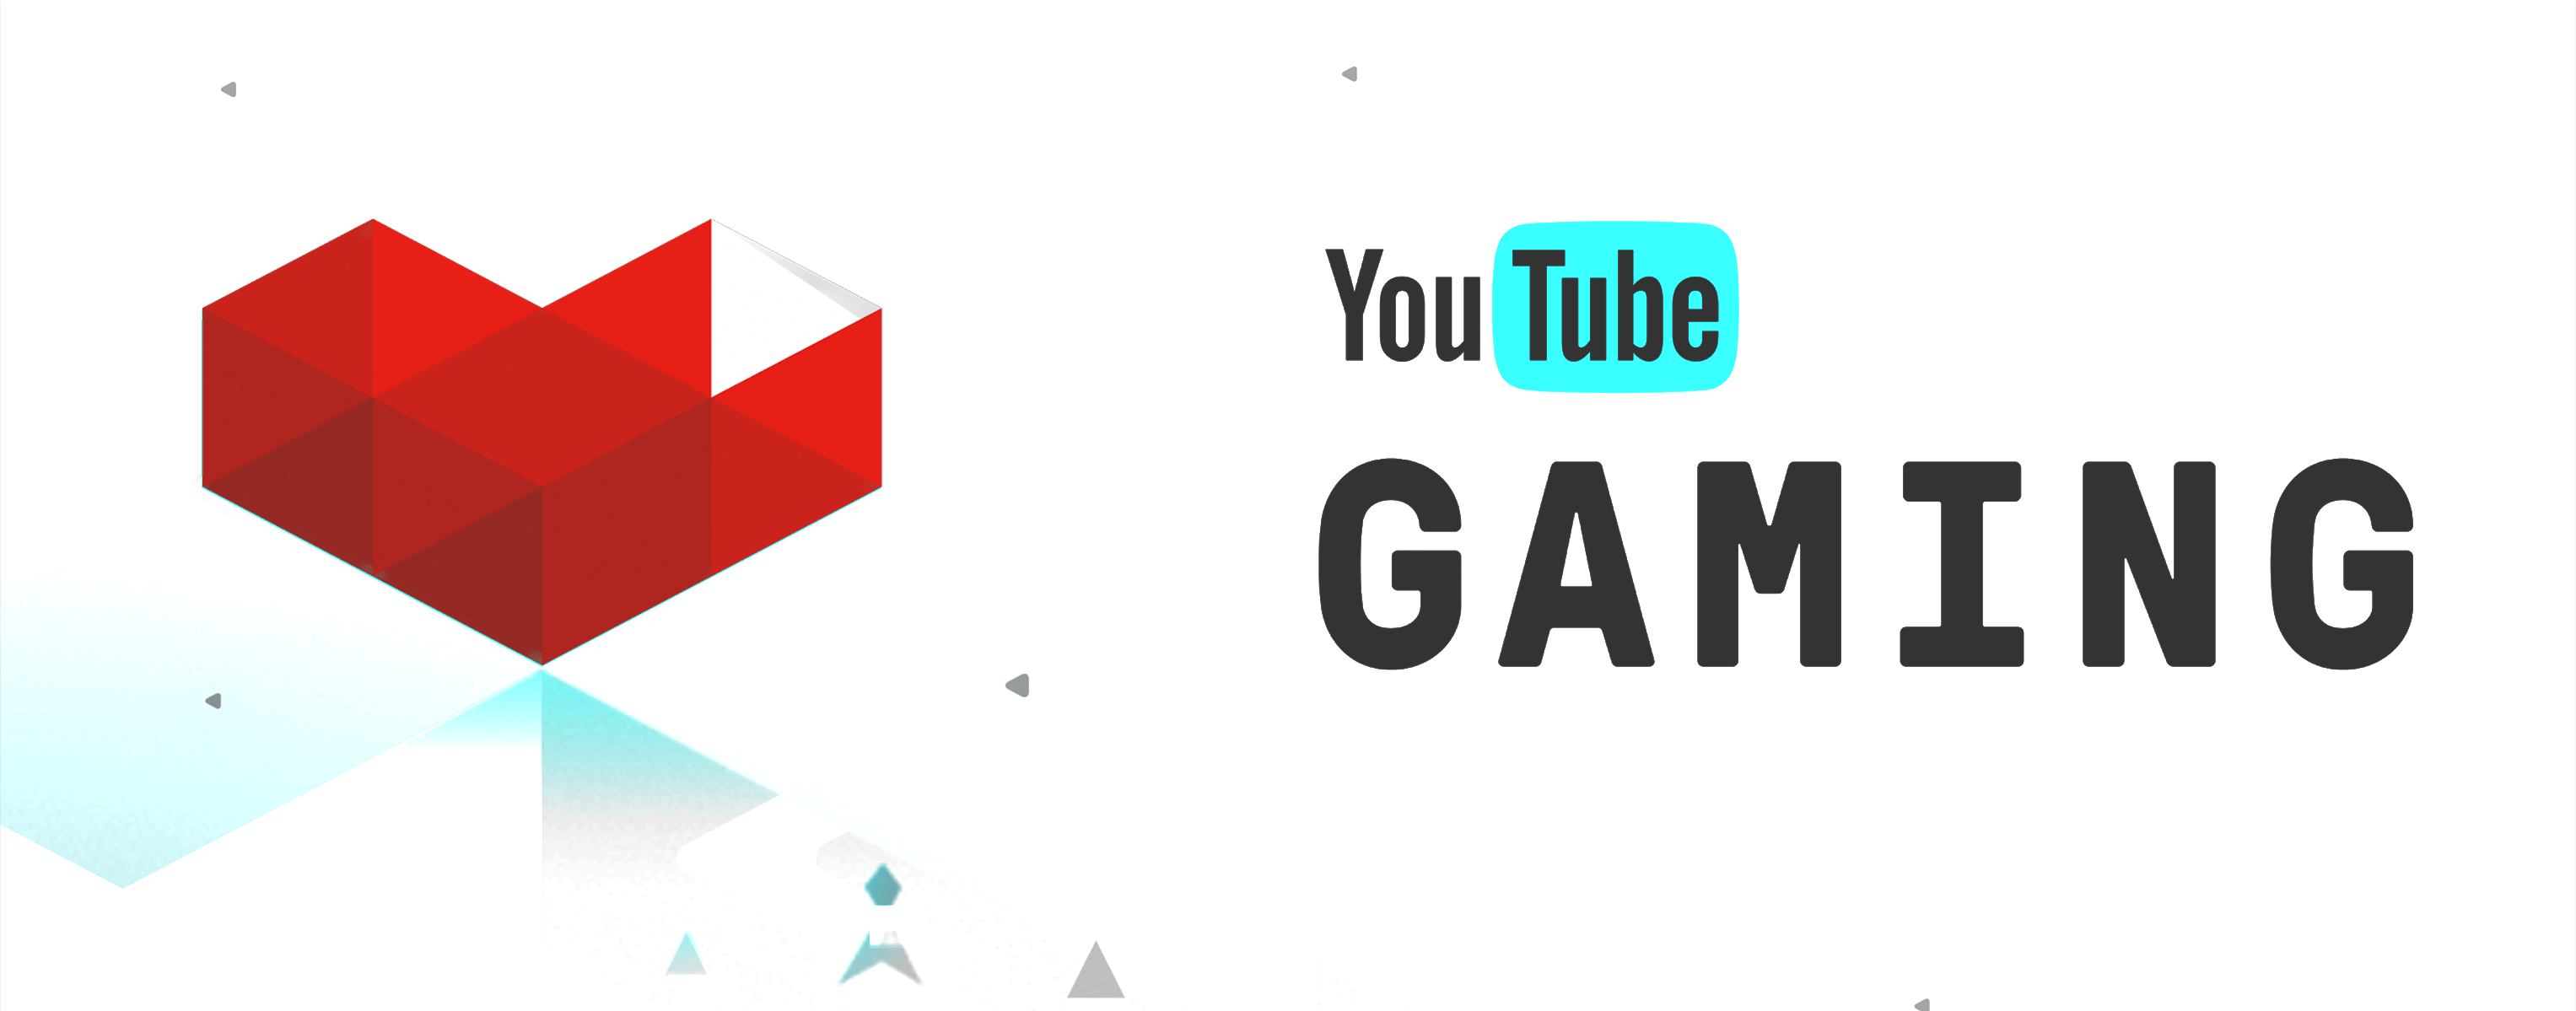 YouTube Gaming - Live Streaming